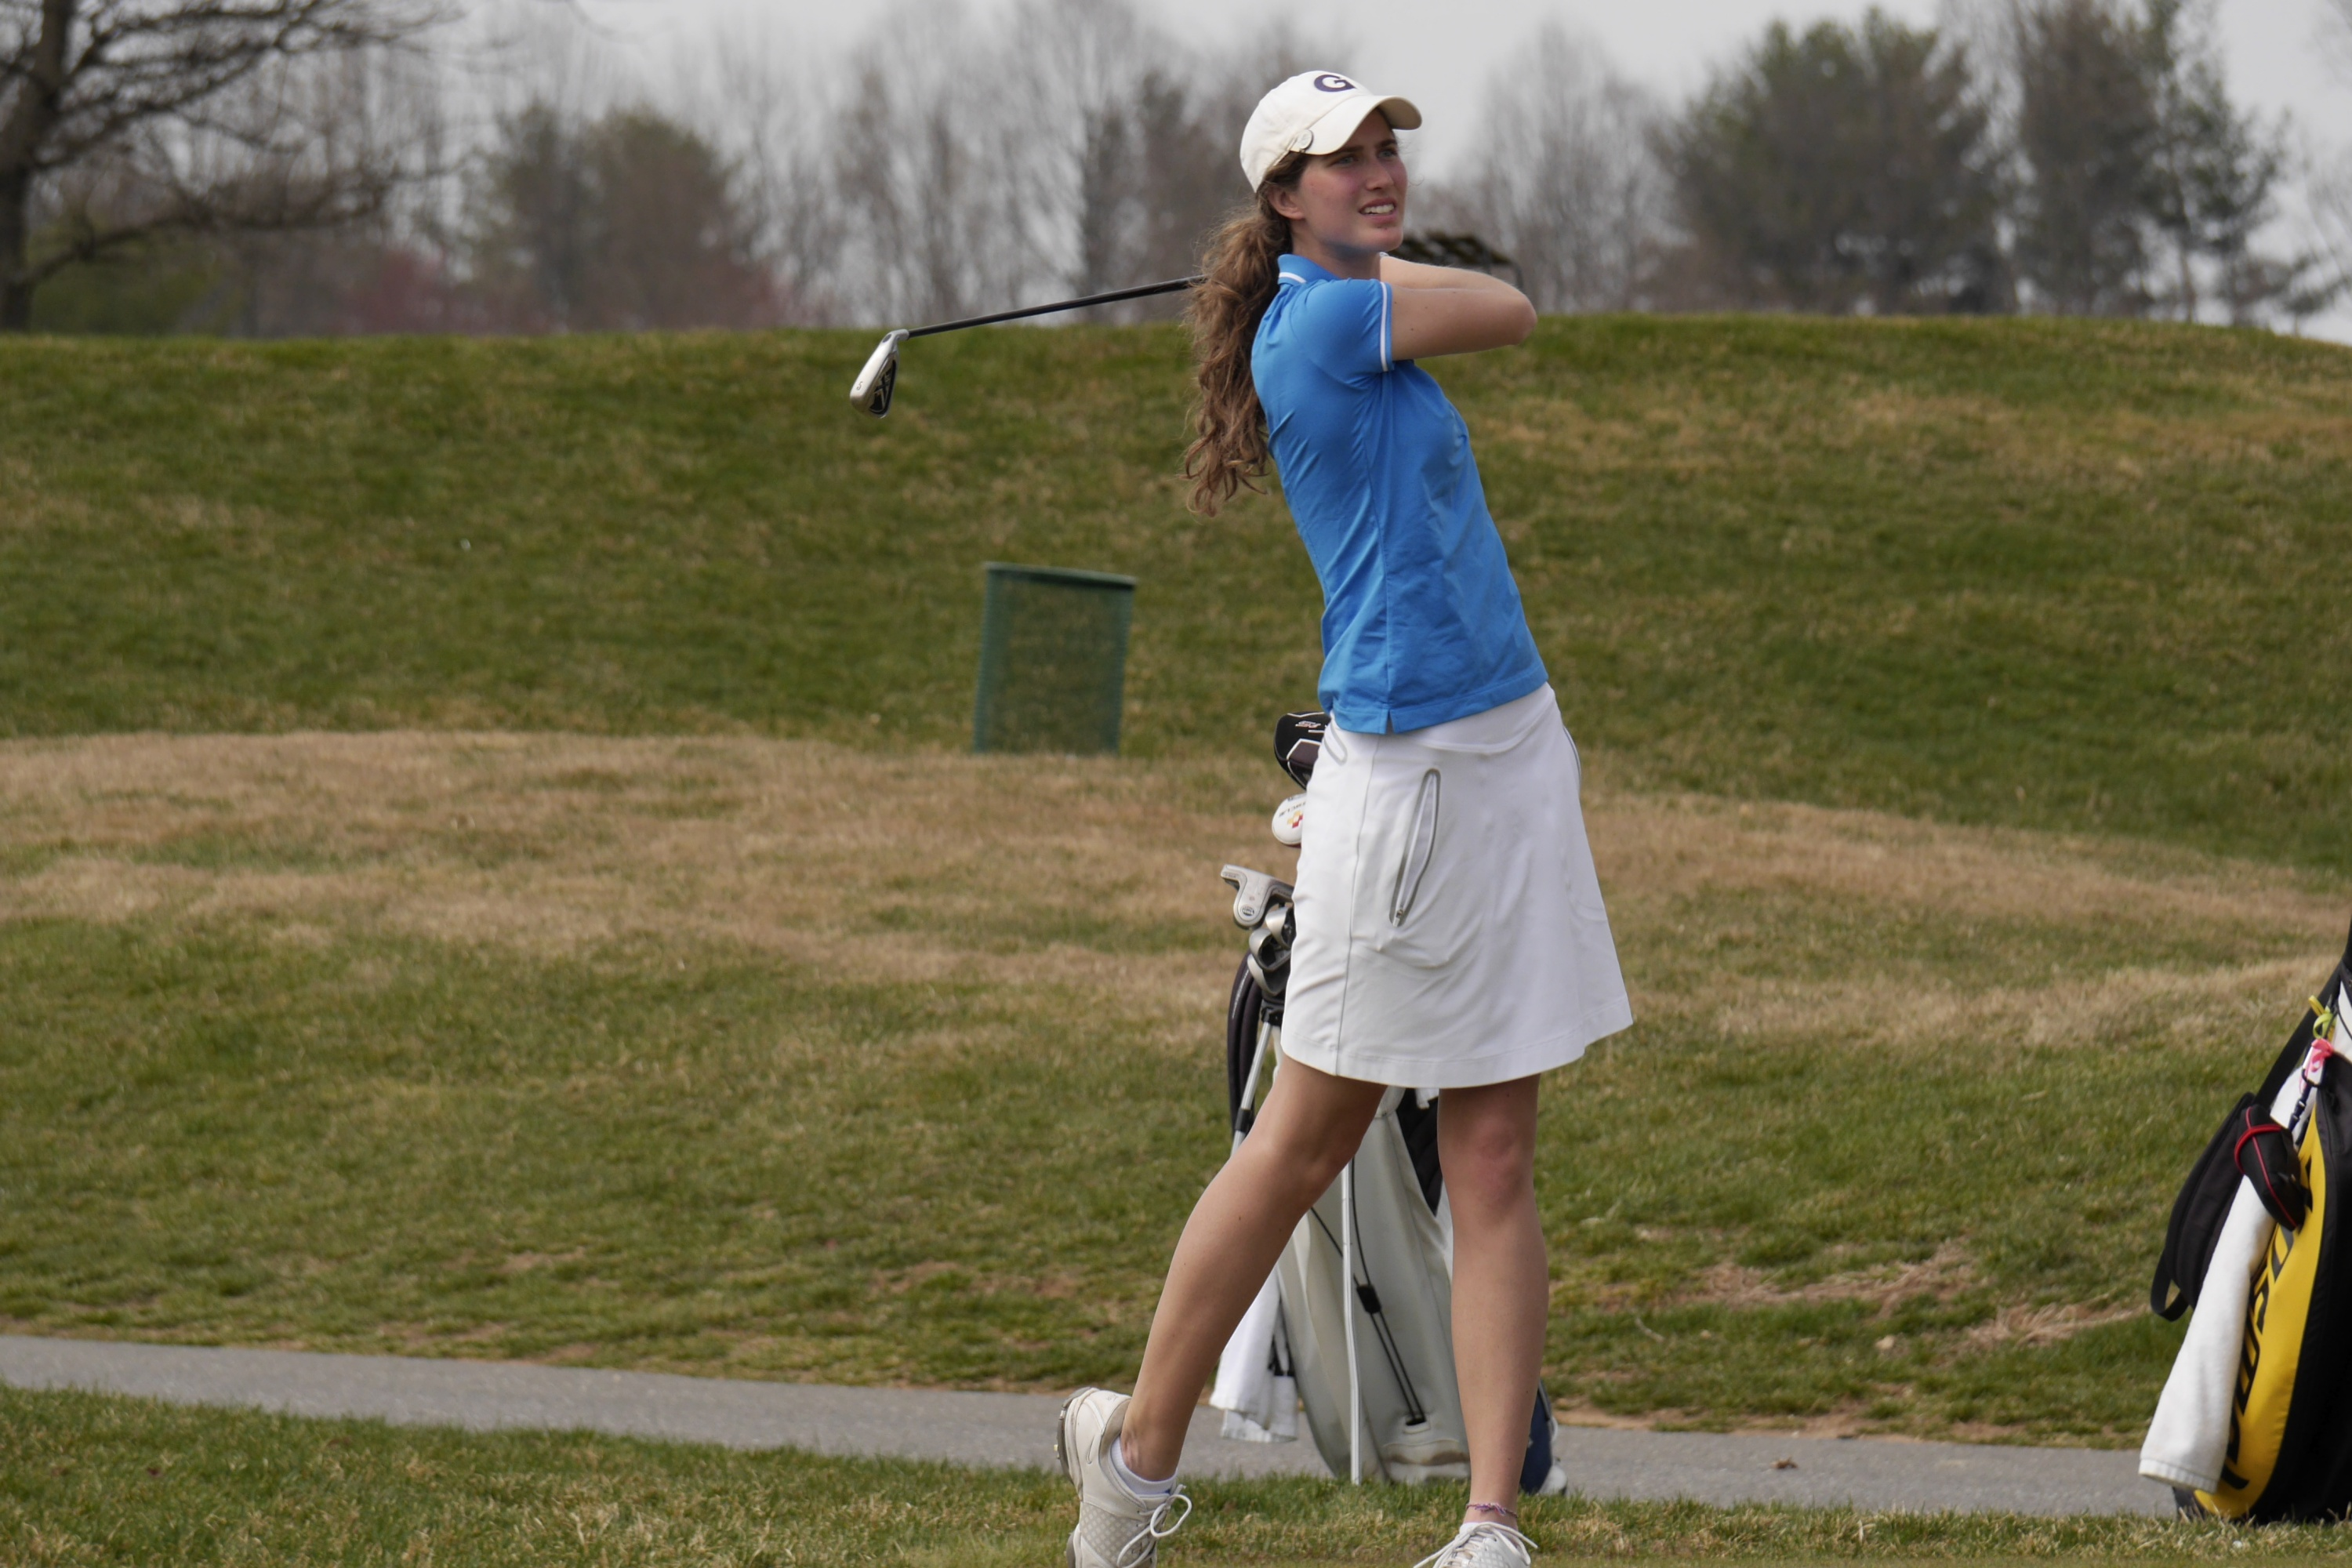 Three Georgetown University women's golfers were among a group of student-athletes selected by the Women's Golf Coaches Association (WGCA) as All-American Scholars.